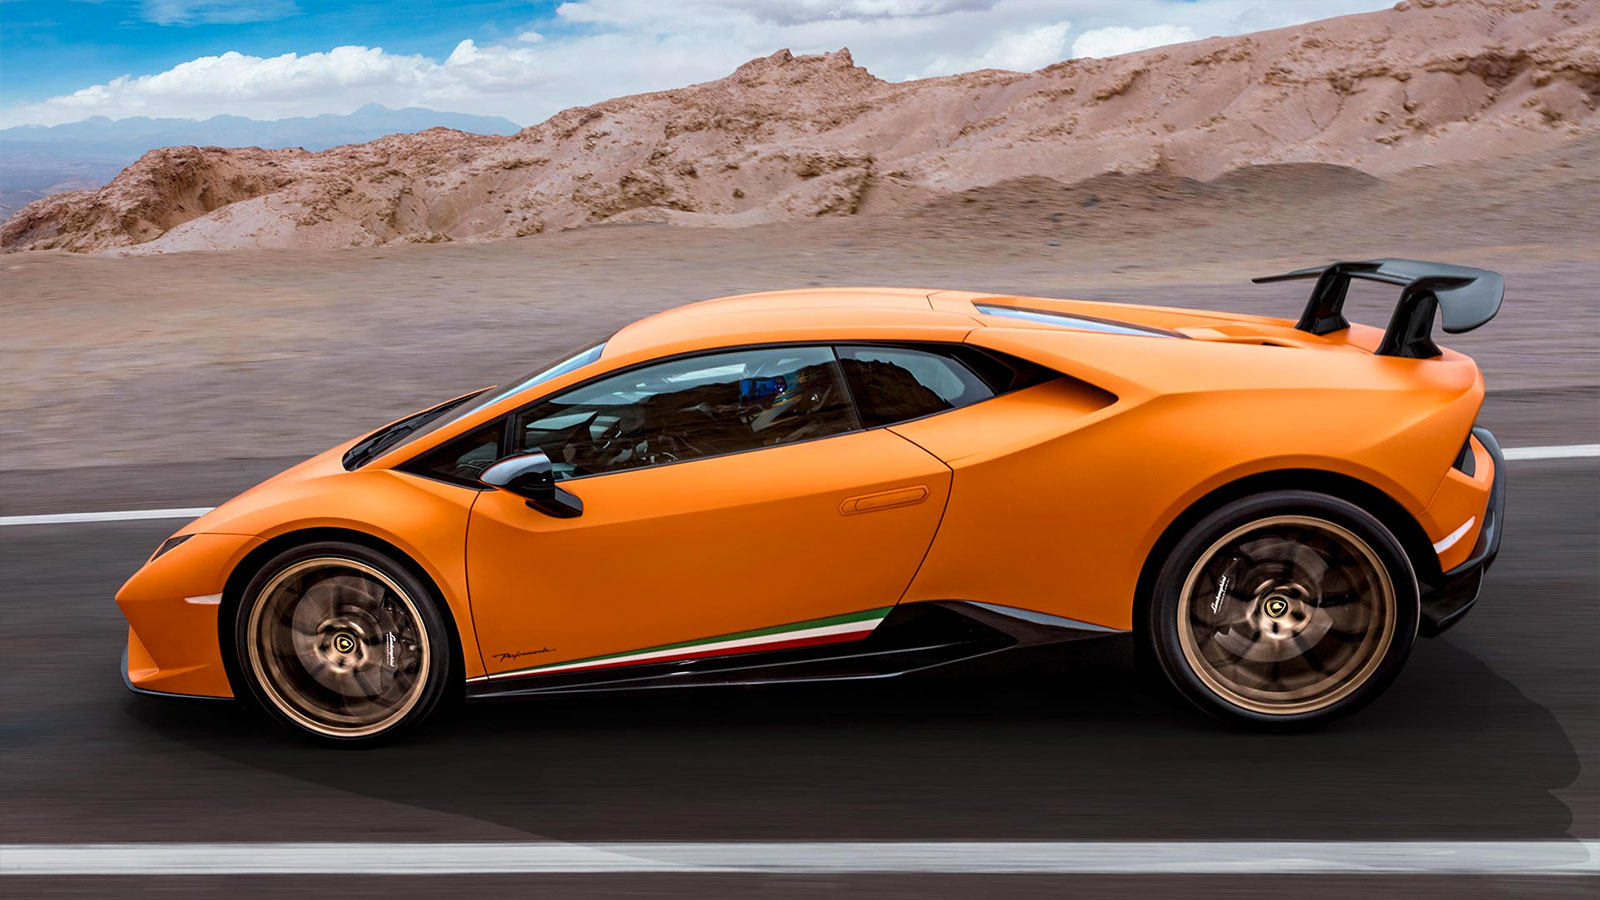 Lamborghini Huracan Performante - Raging Technology image 4